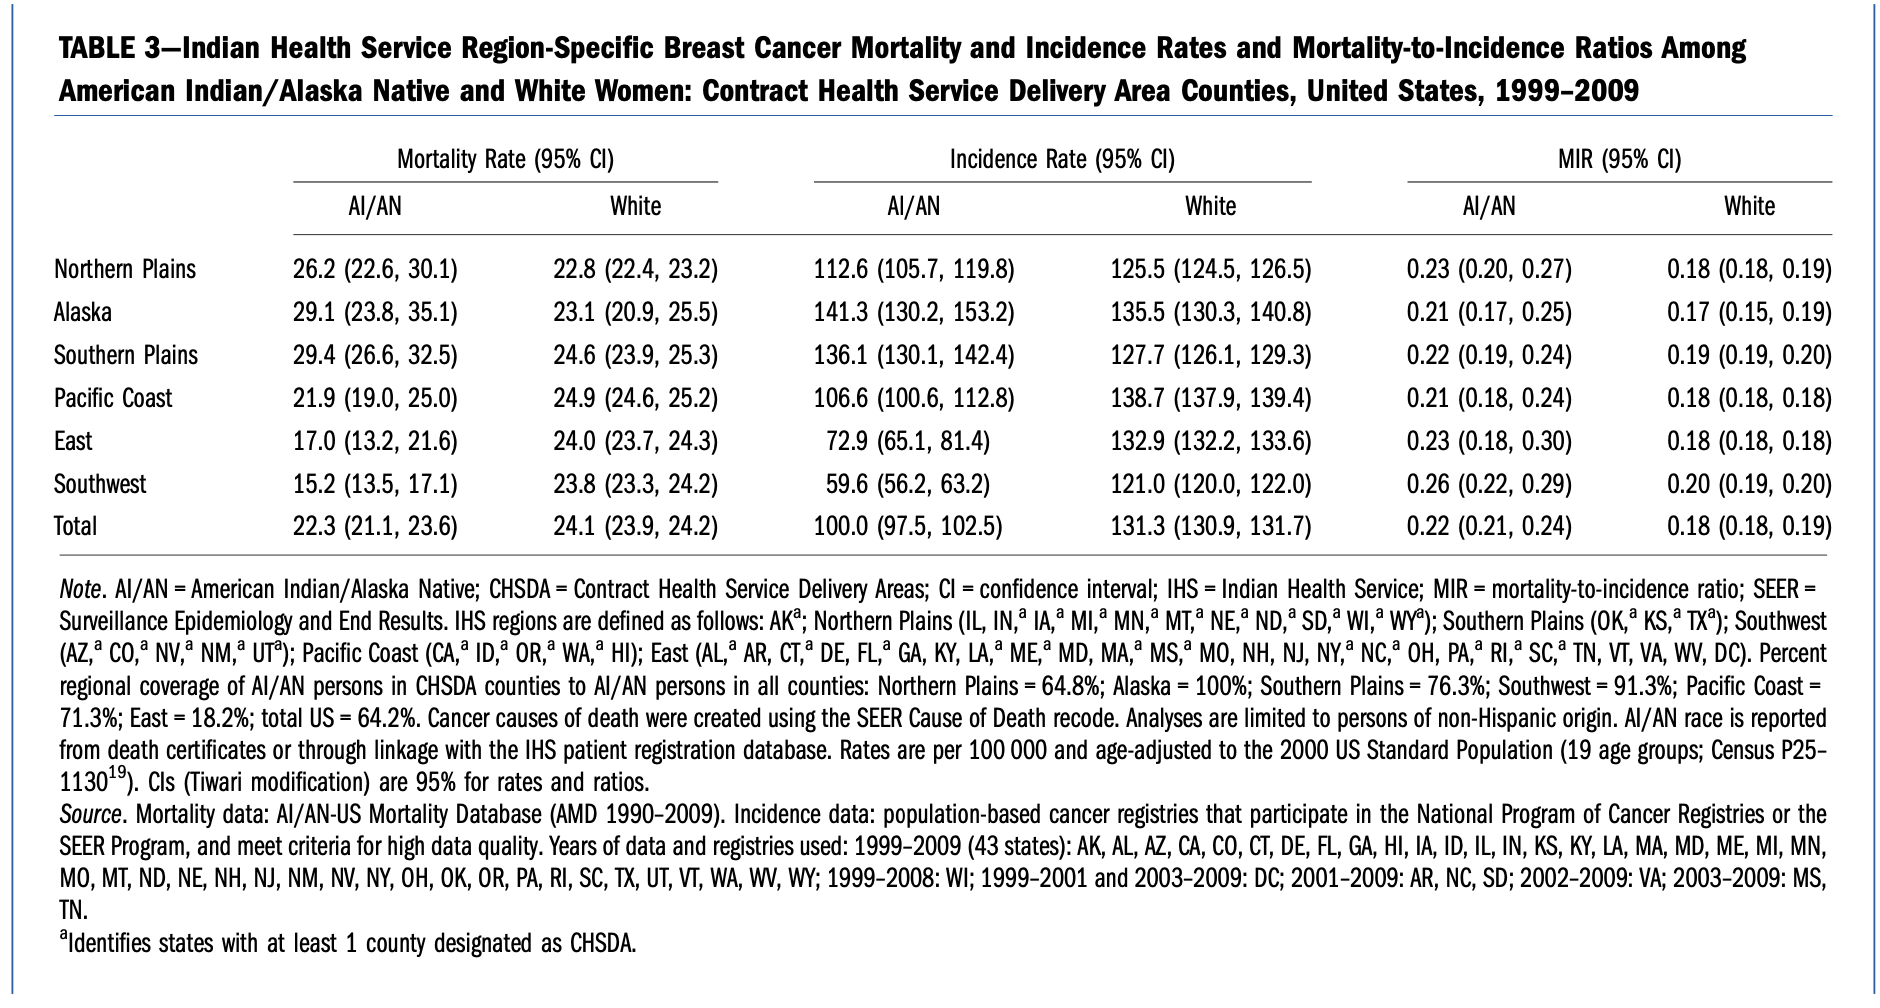 IHS Breast Cancer Mortality, Incidence and Mortality-to-Incidence Rations